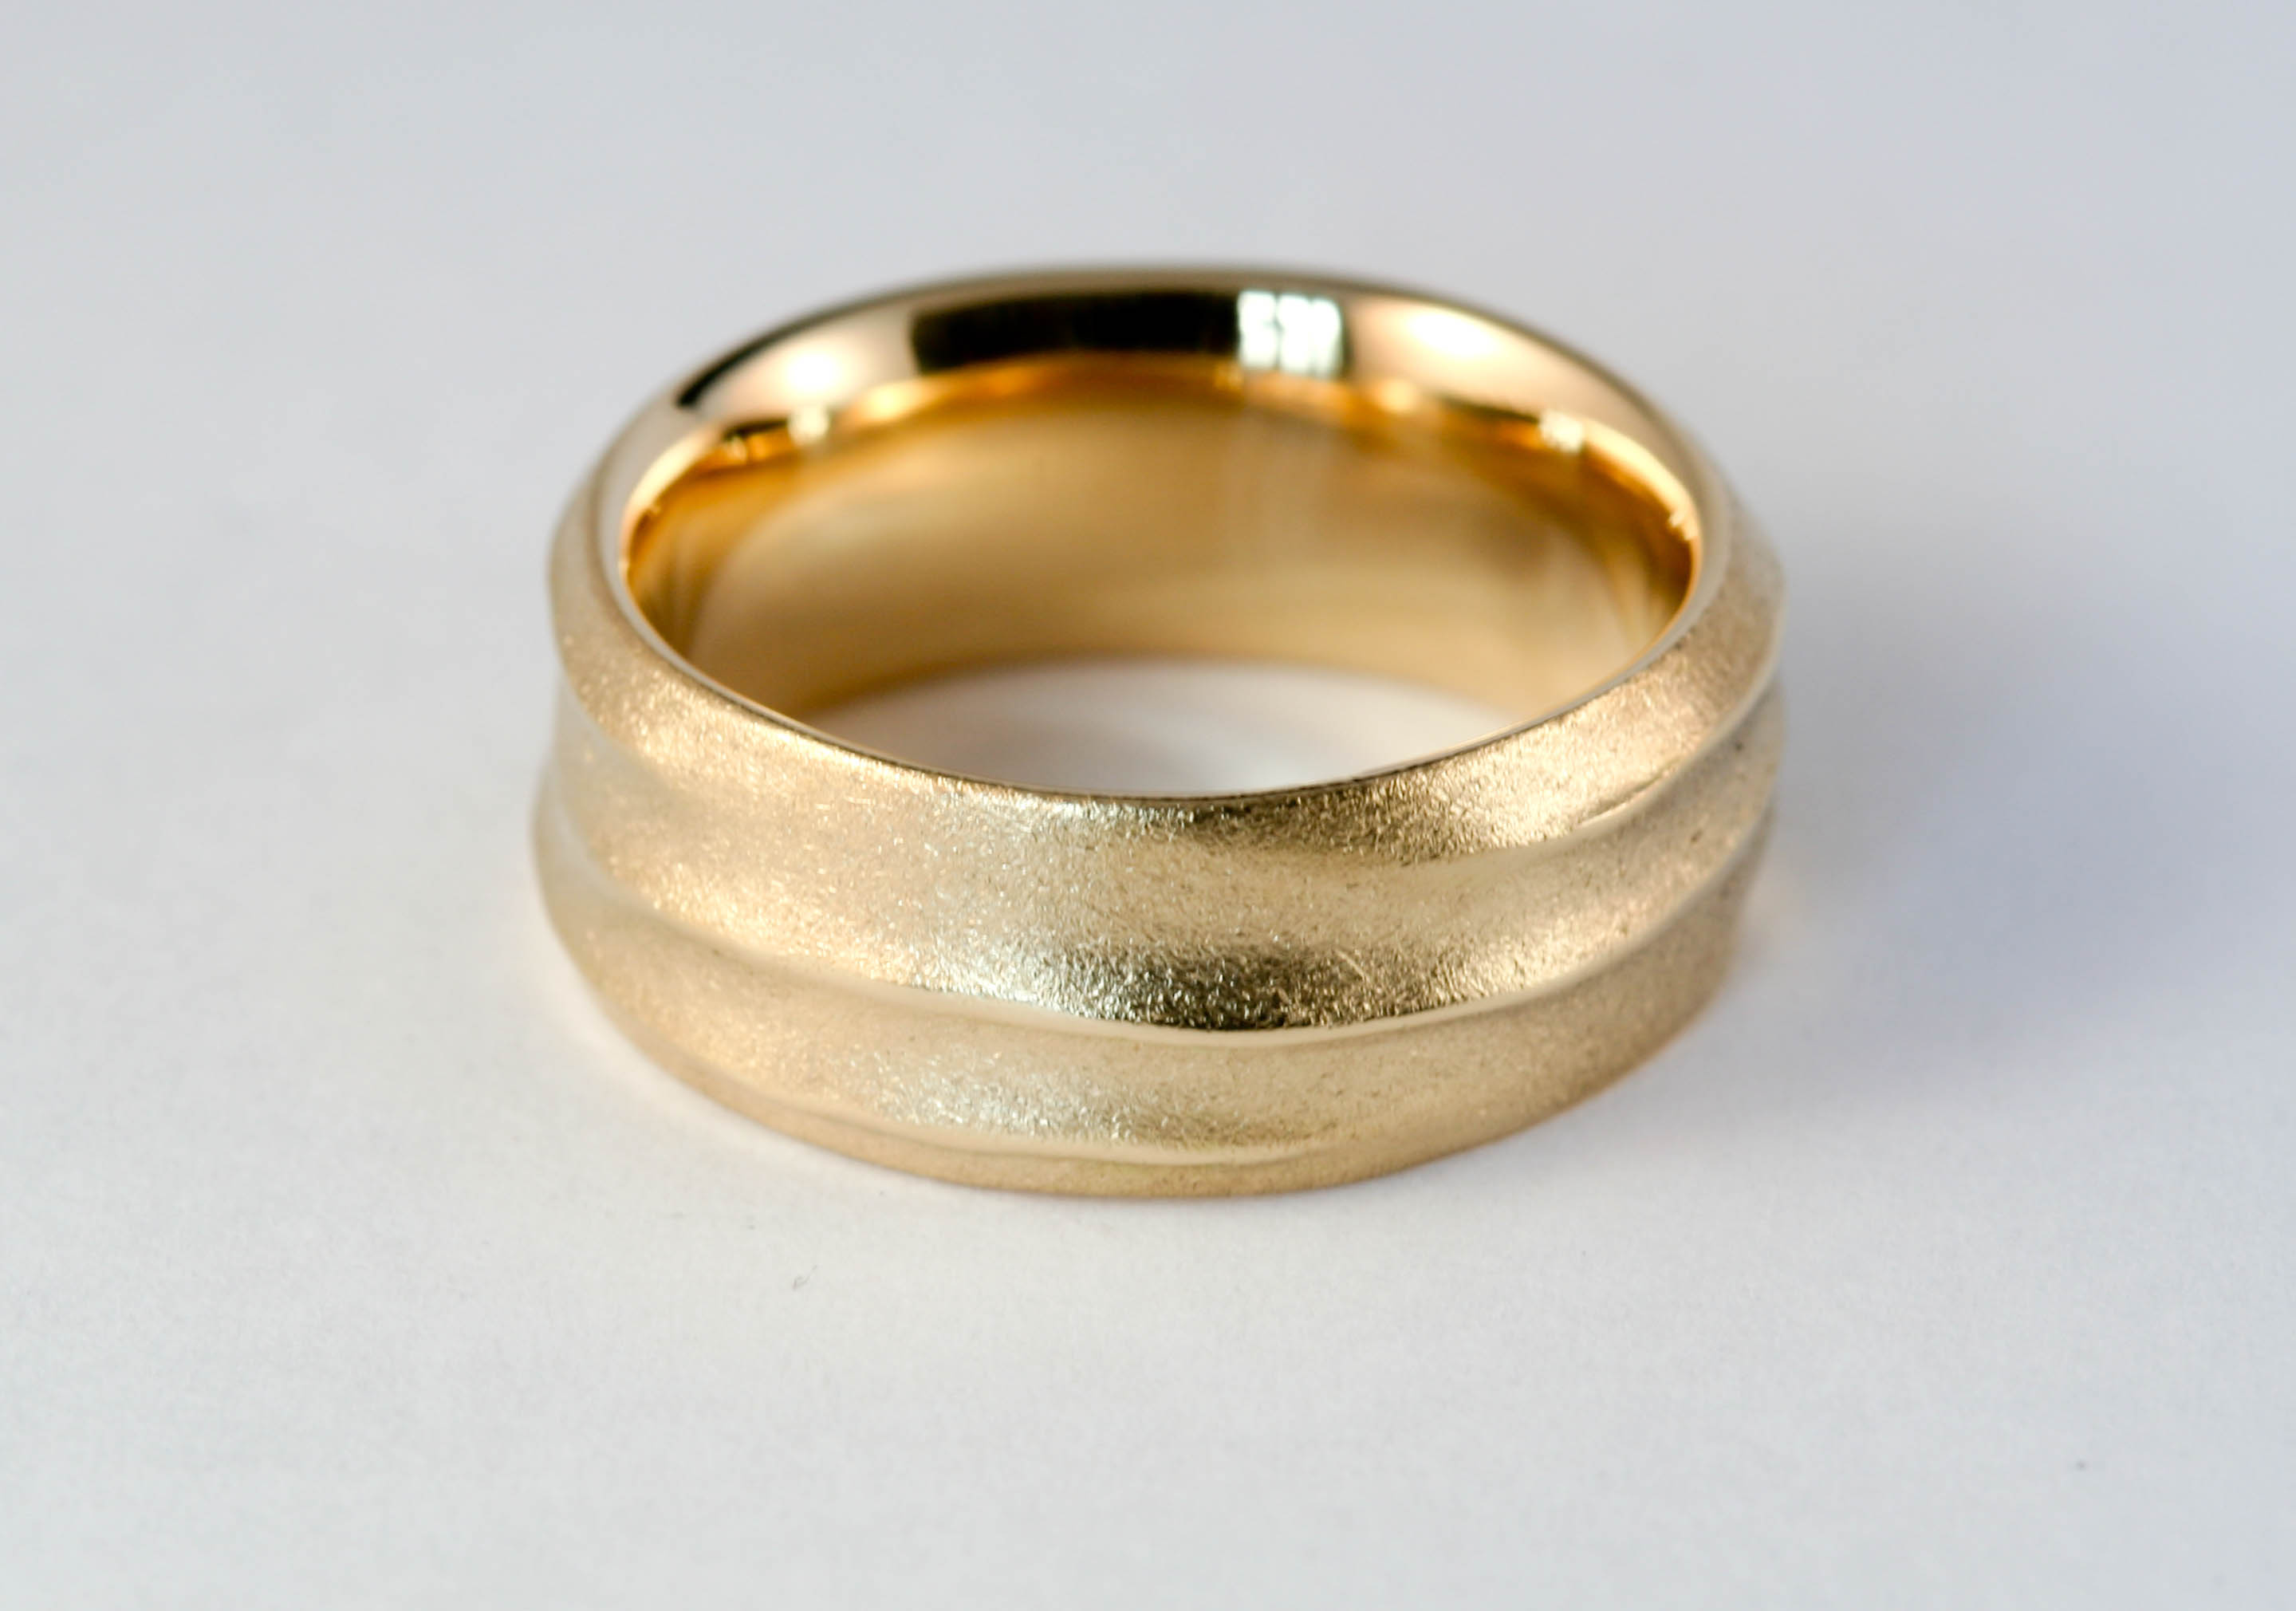 18ct wedding band